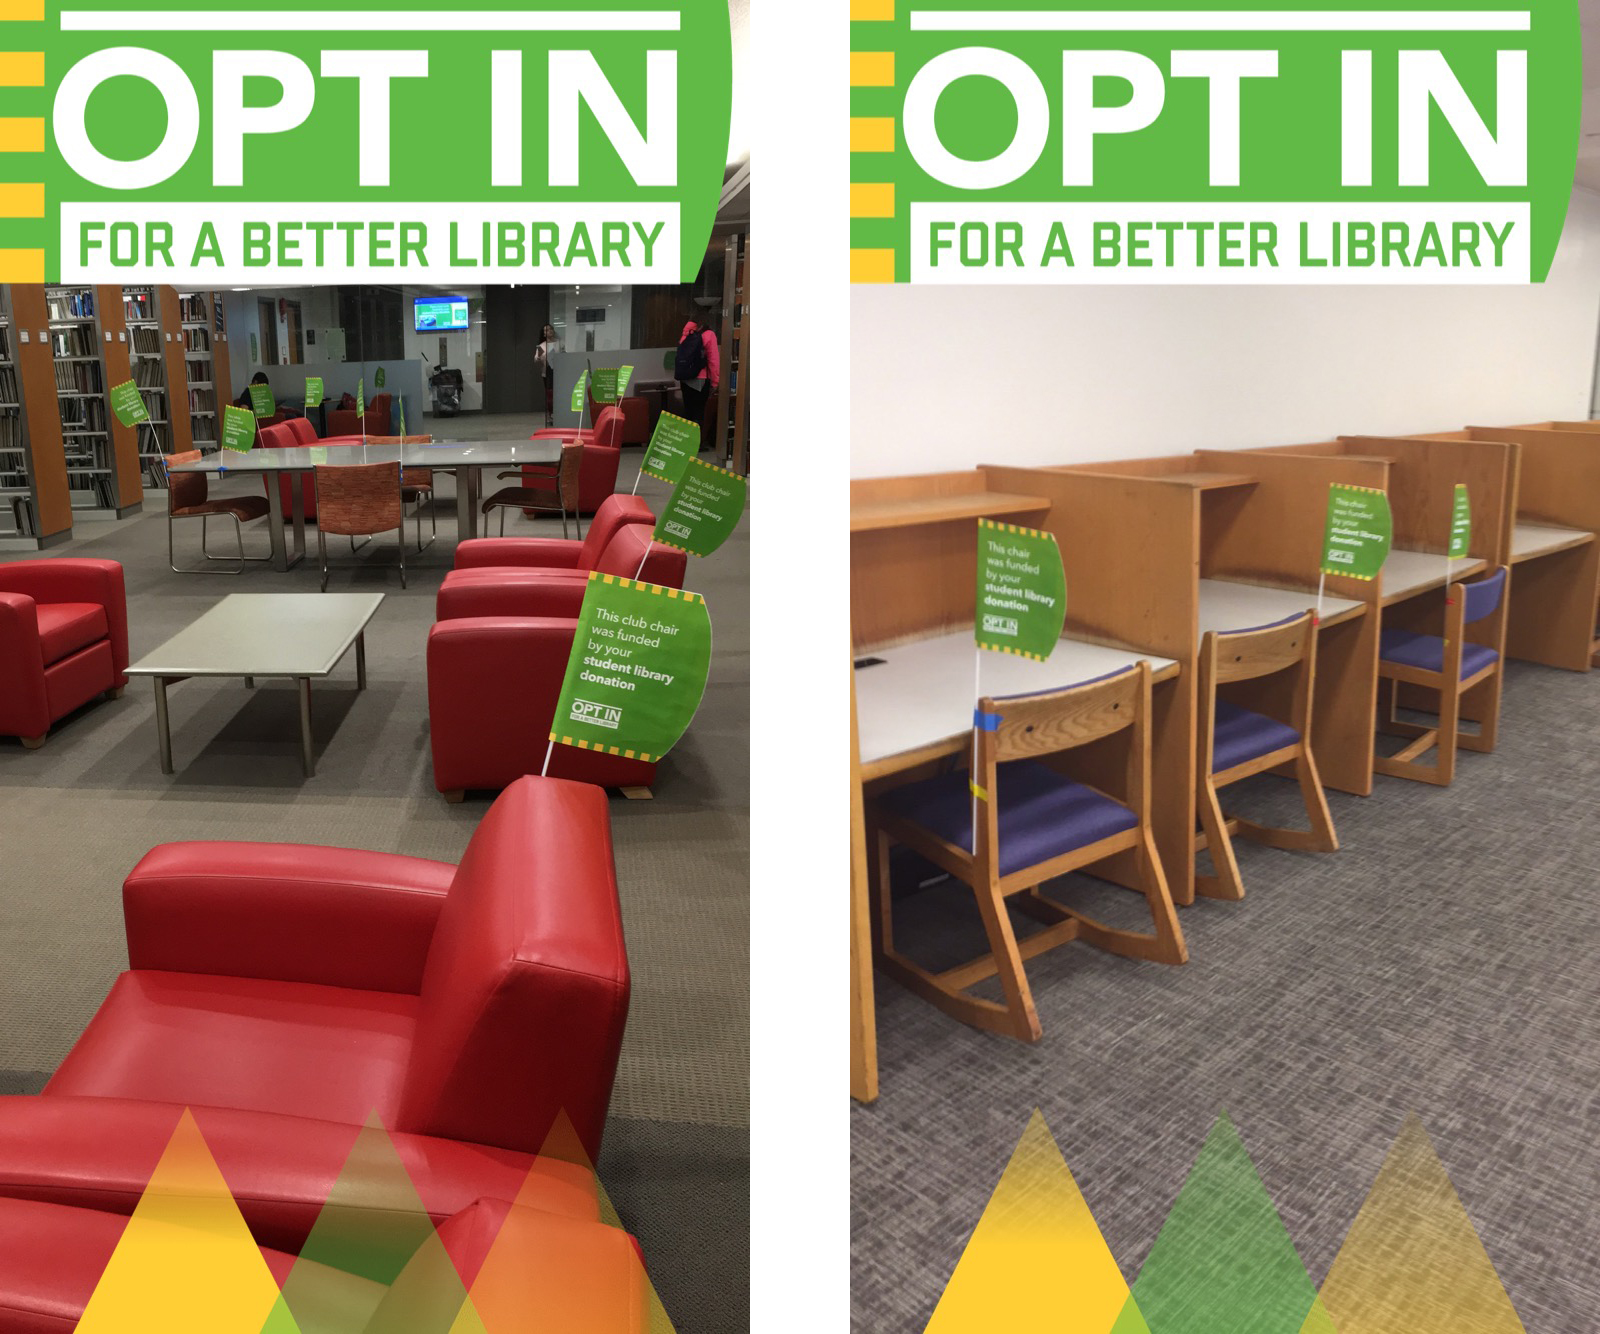 Opt in for a better library Snapchat filter